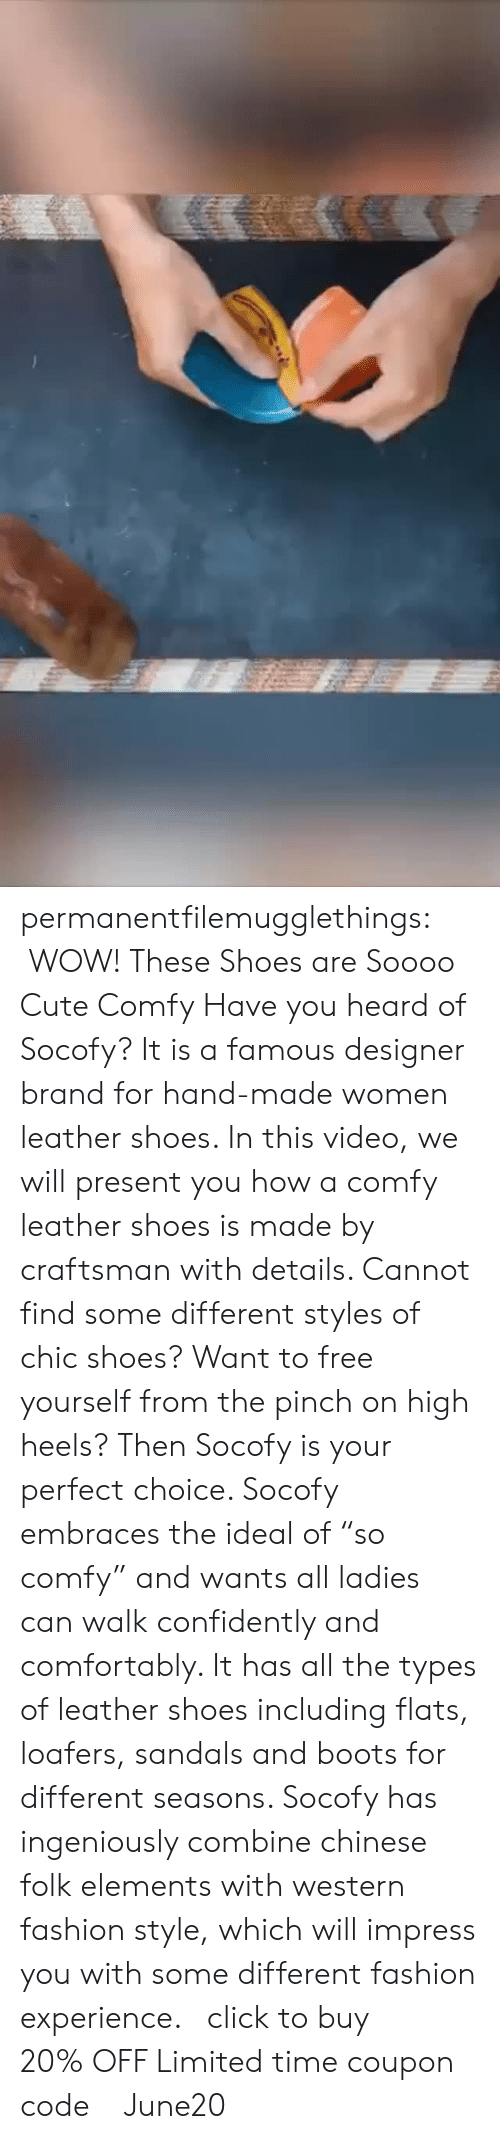 "combine: permanentfilemugglethings:   WOW! These Shoes are Soooo Cute  Comfy  Have you heard of Socofy? It is a famous designer brand for hand-made women leather shoes. In this video, we will present you how a comfy leather shoes is made by craftsman with details. Cannot find some different styles of chic shoes? Want to free yourself from the pinch on high heels? Then Socofy is your perfect choice. Socofy embraces the ideal of ""so comfy"" and wants all ladies can walk confidently and comfortably. It has all the types of leather shoes including flats, loafers, sandals and boots for different seasons. Socofy has ingeniously combine chinese folk elements with western fashion style, which will impress you with some different fashion experience.   click to buy!!! 20% OFF Limited time coupon code : June20"